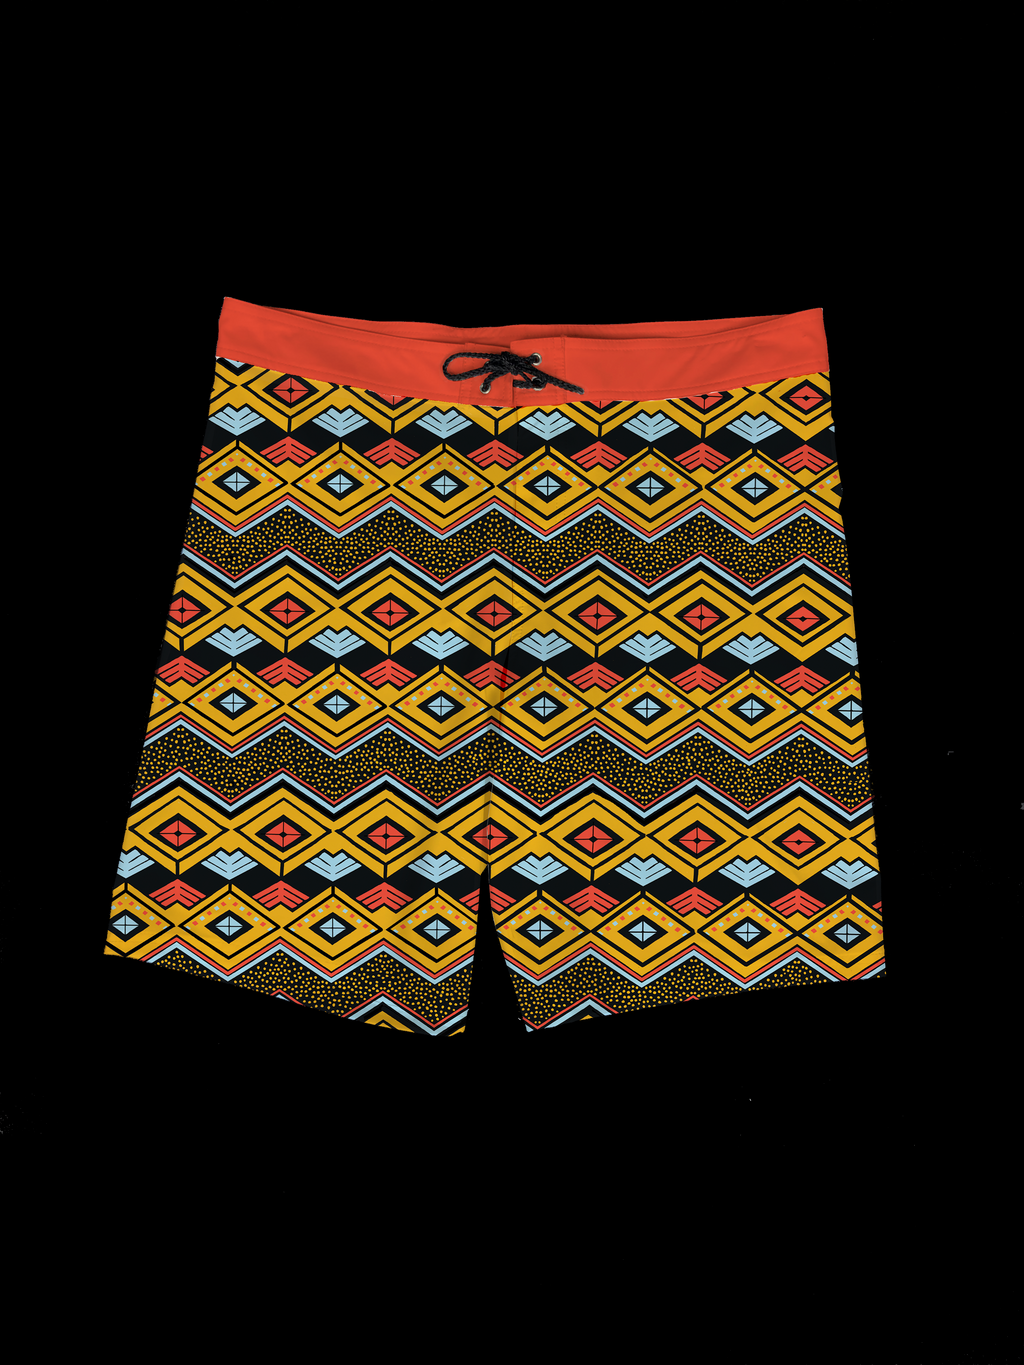 ZigZag Tribal (Red) Men's Boardshort